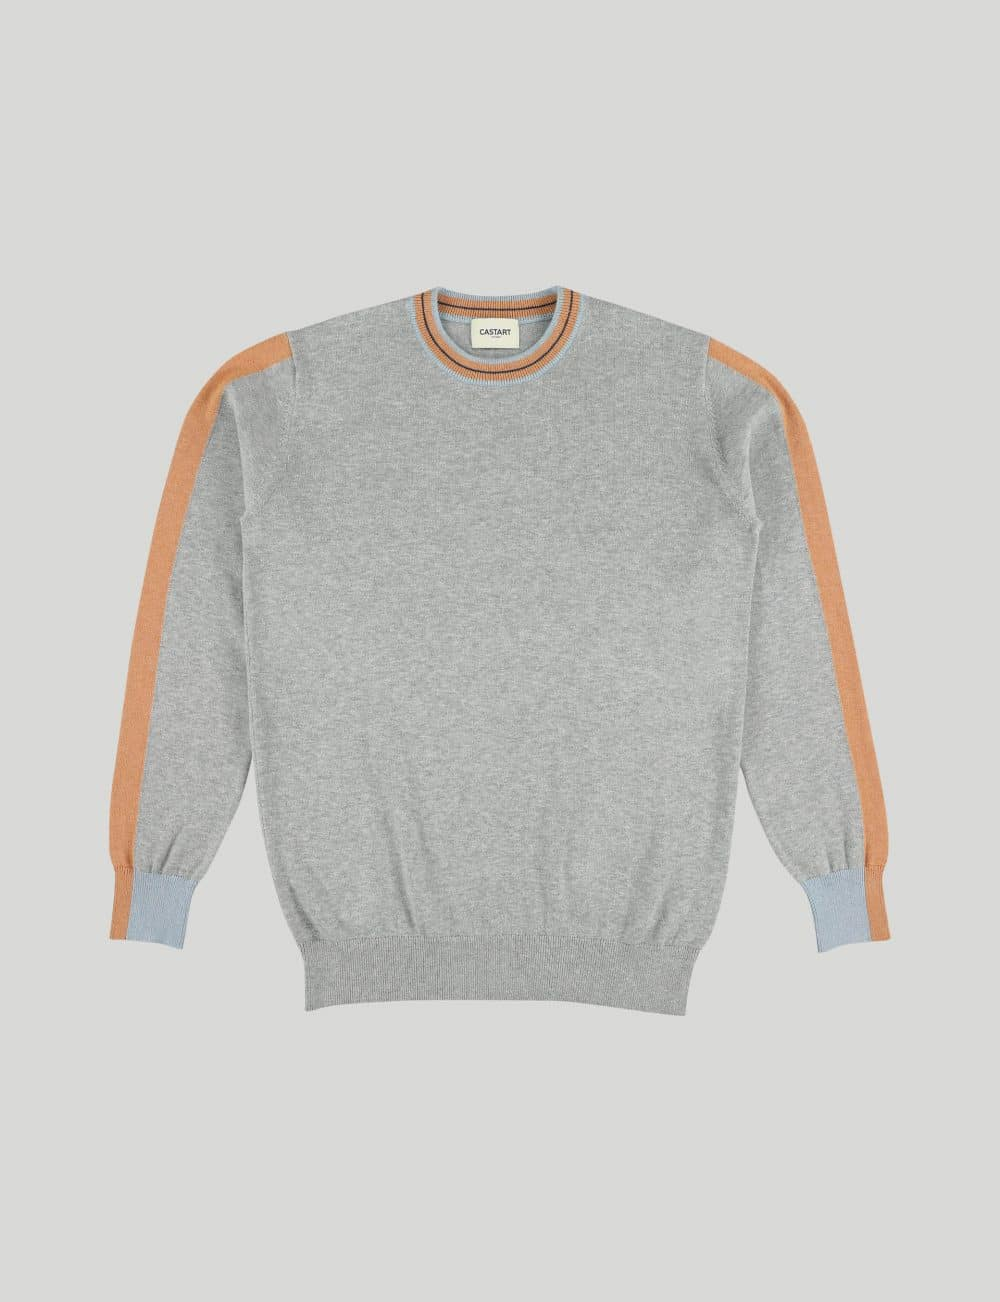 Castart - Sunbuddy knitwear - Middle Grey